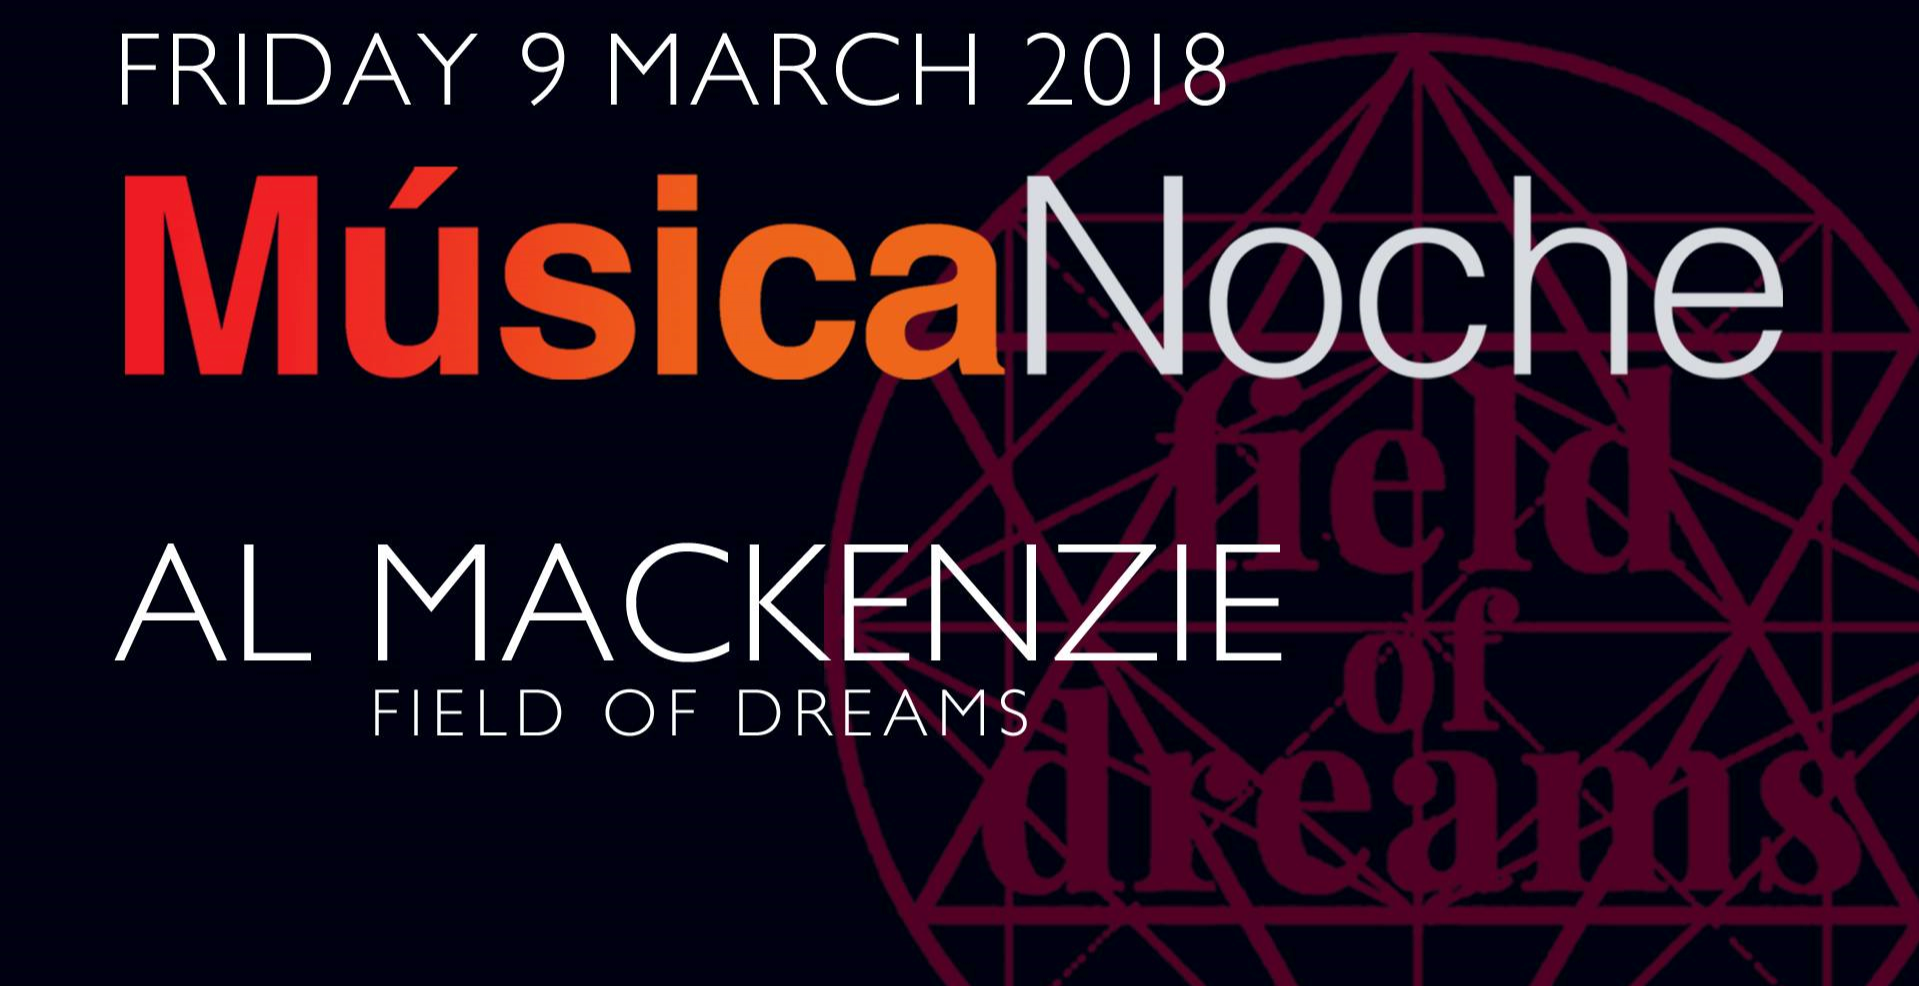 Música Noche - with Al Mackenzie (Field Of Dreams)